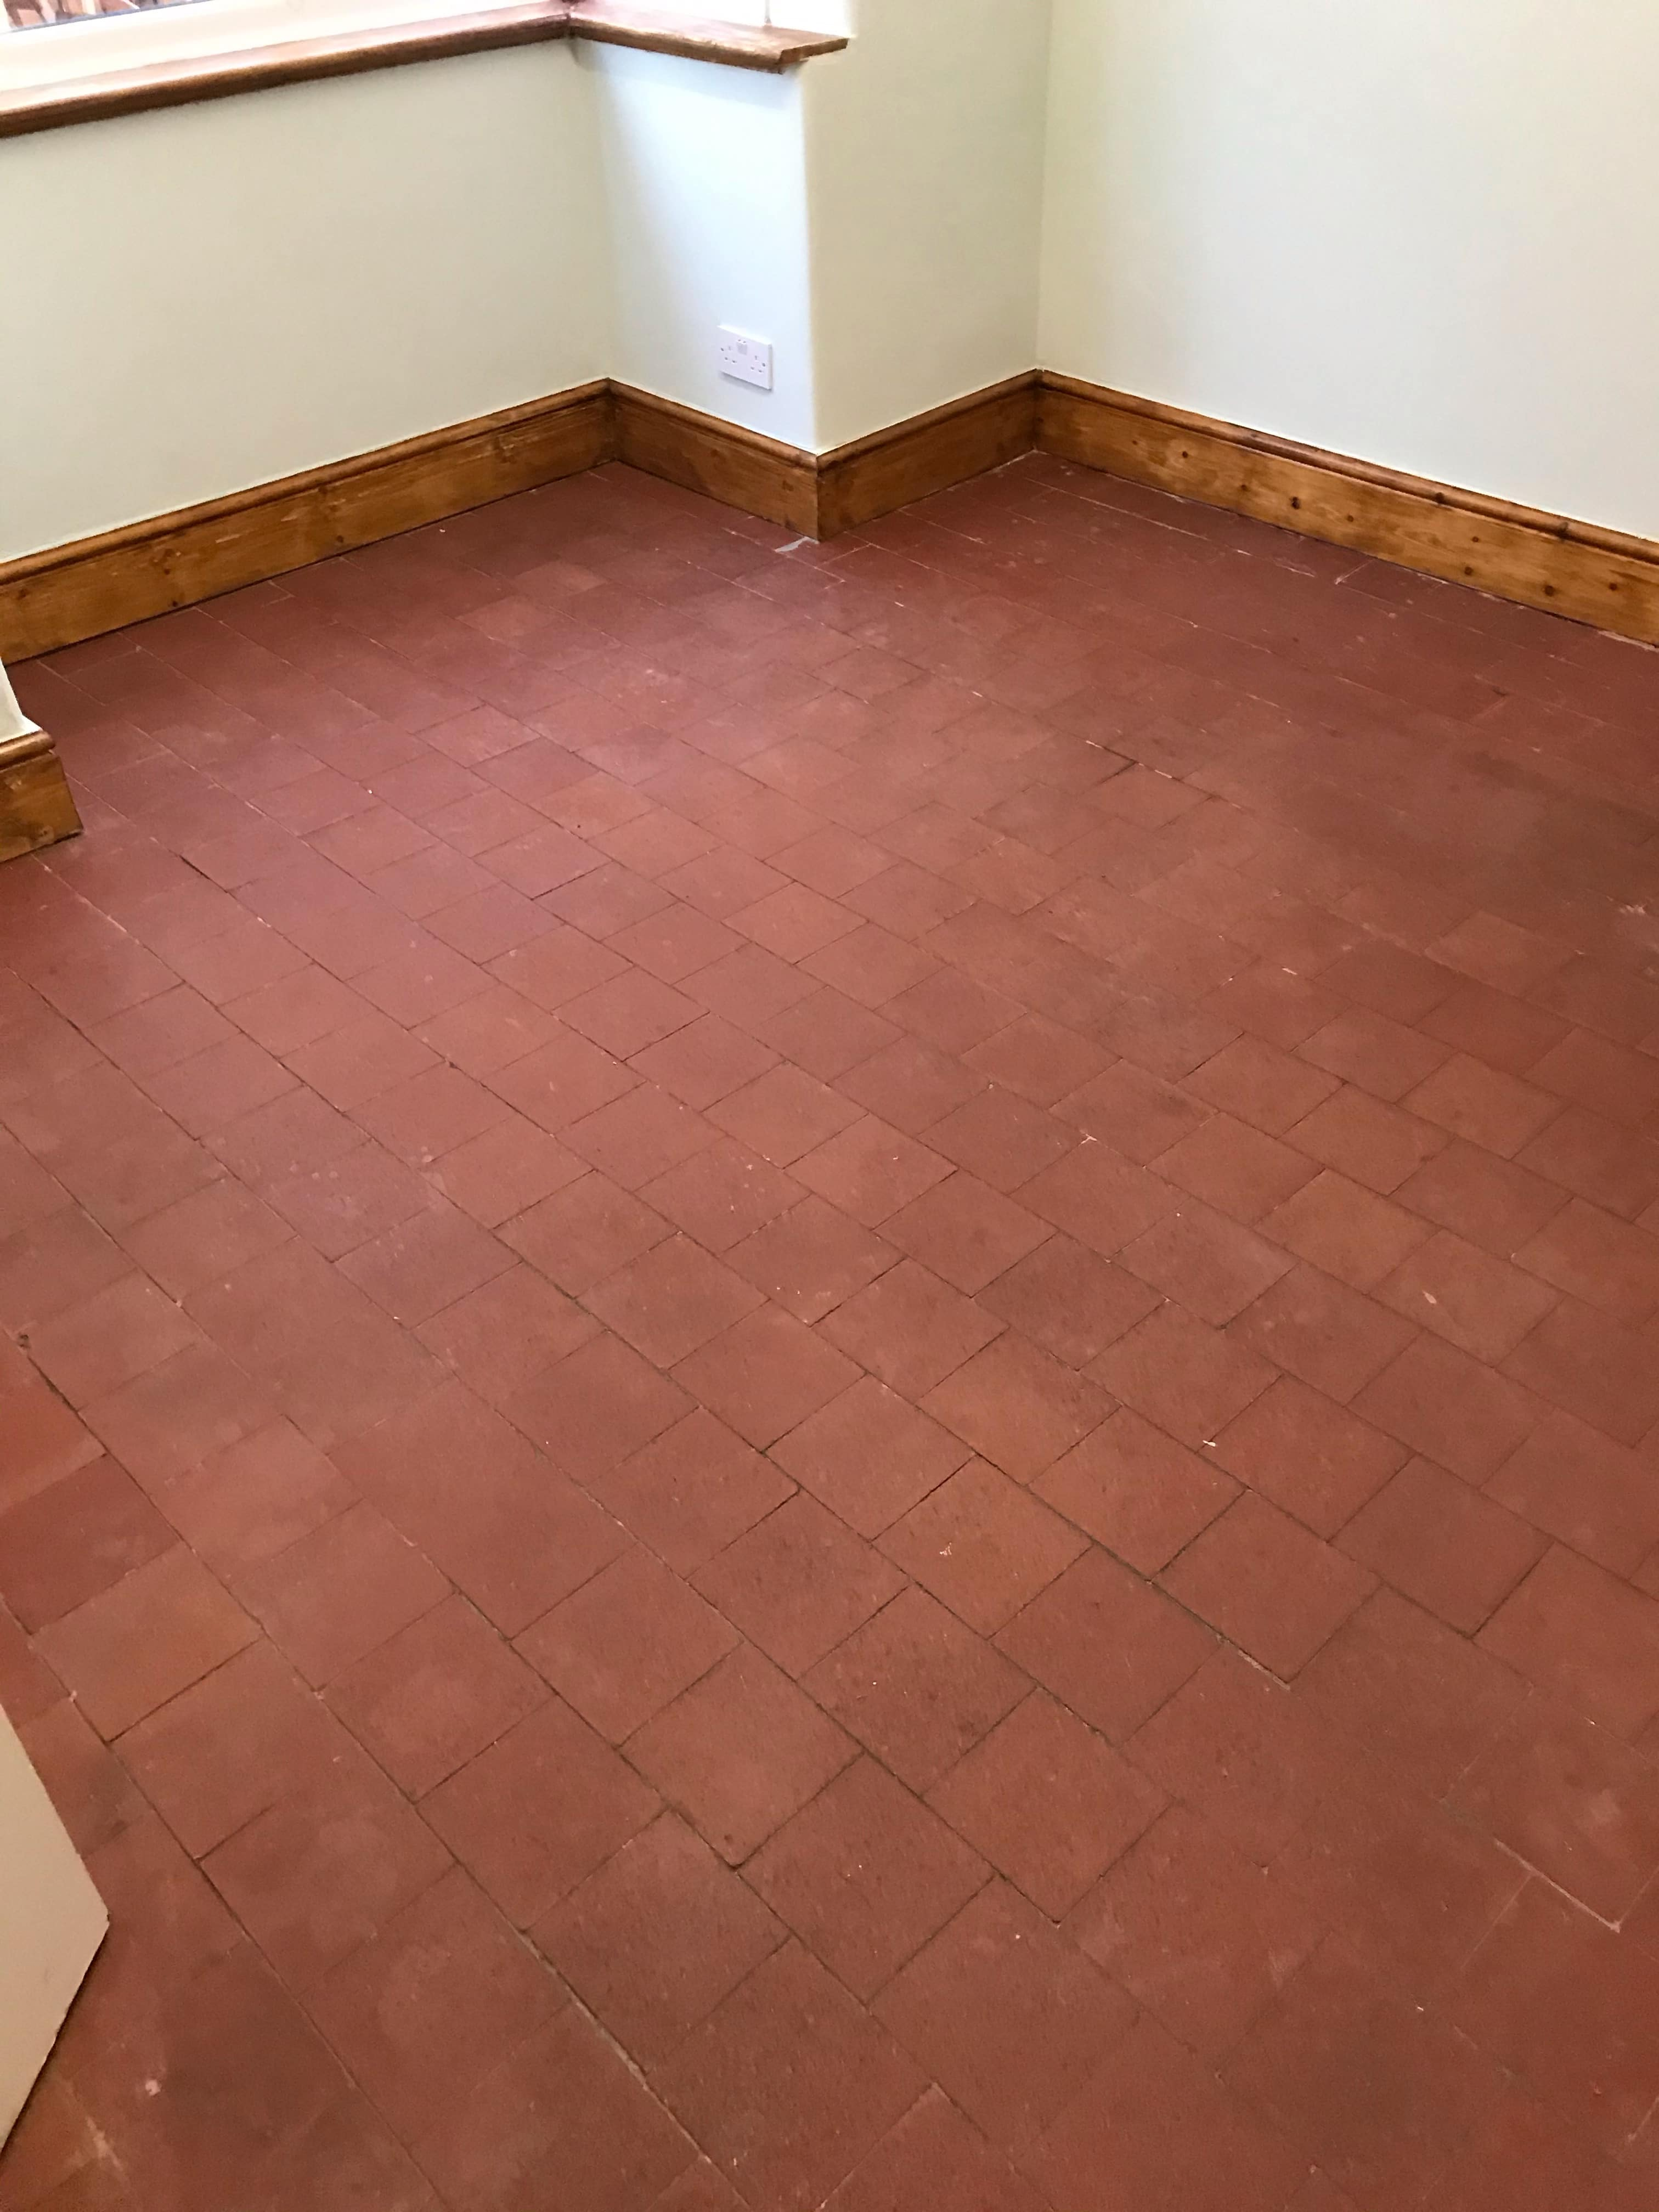 Quarry Tile Floor Before Cleaning Stafford